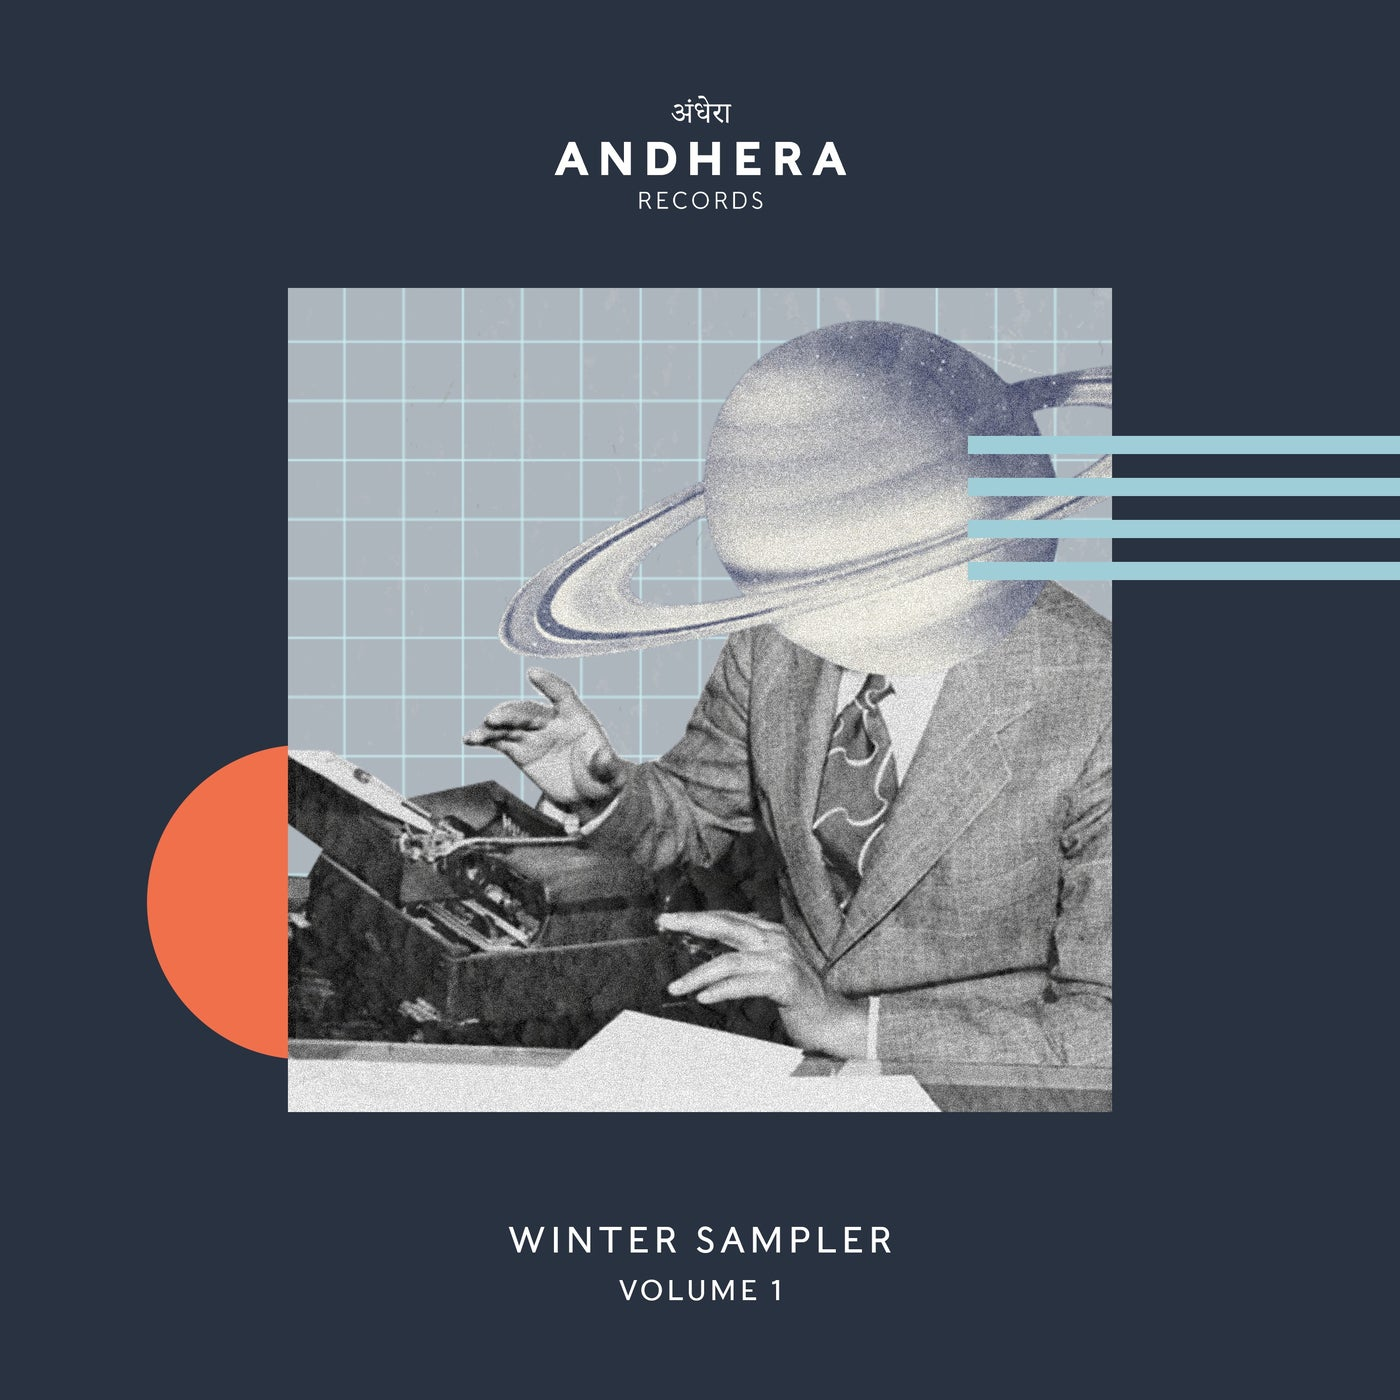 Andhera Records Winter Sampler Volume 1